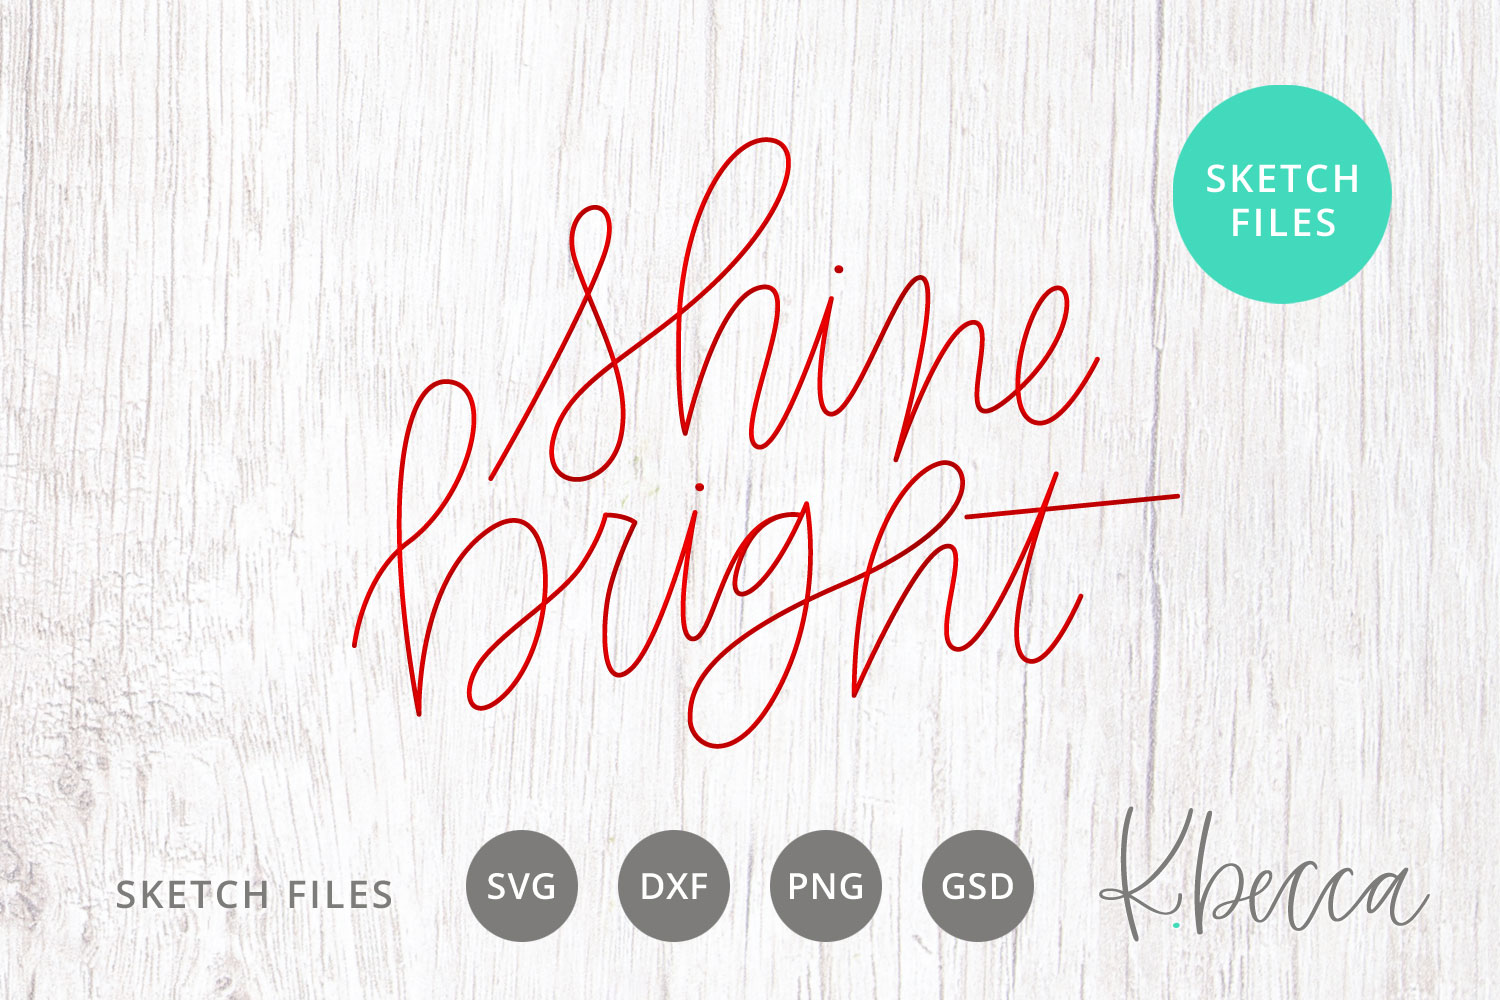 Foil Quill Sketch Shine Bright SVG example image 1